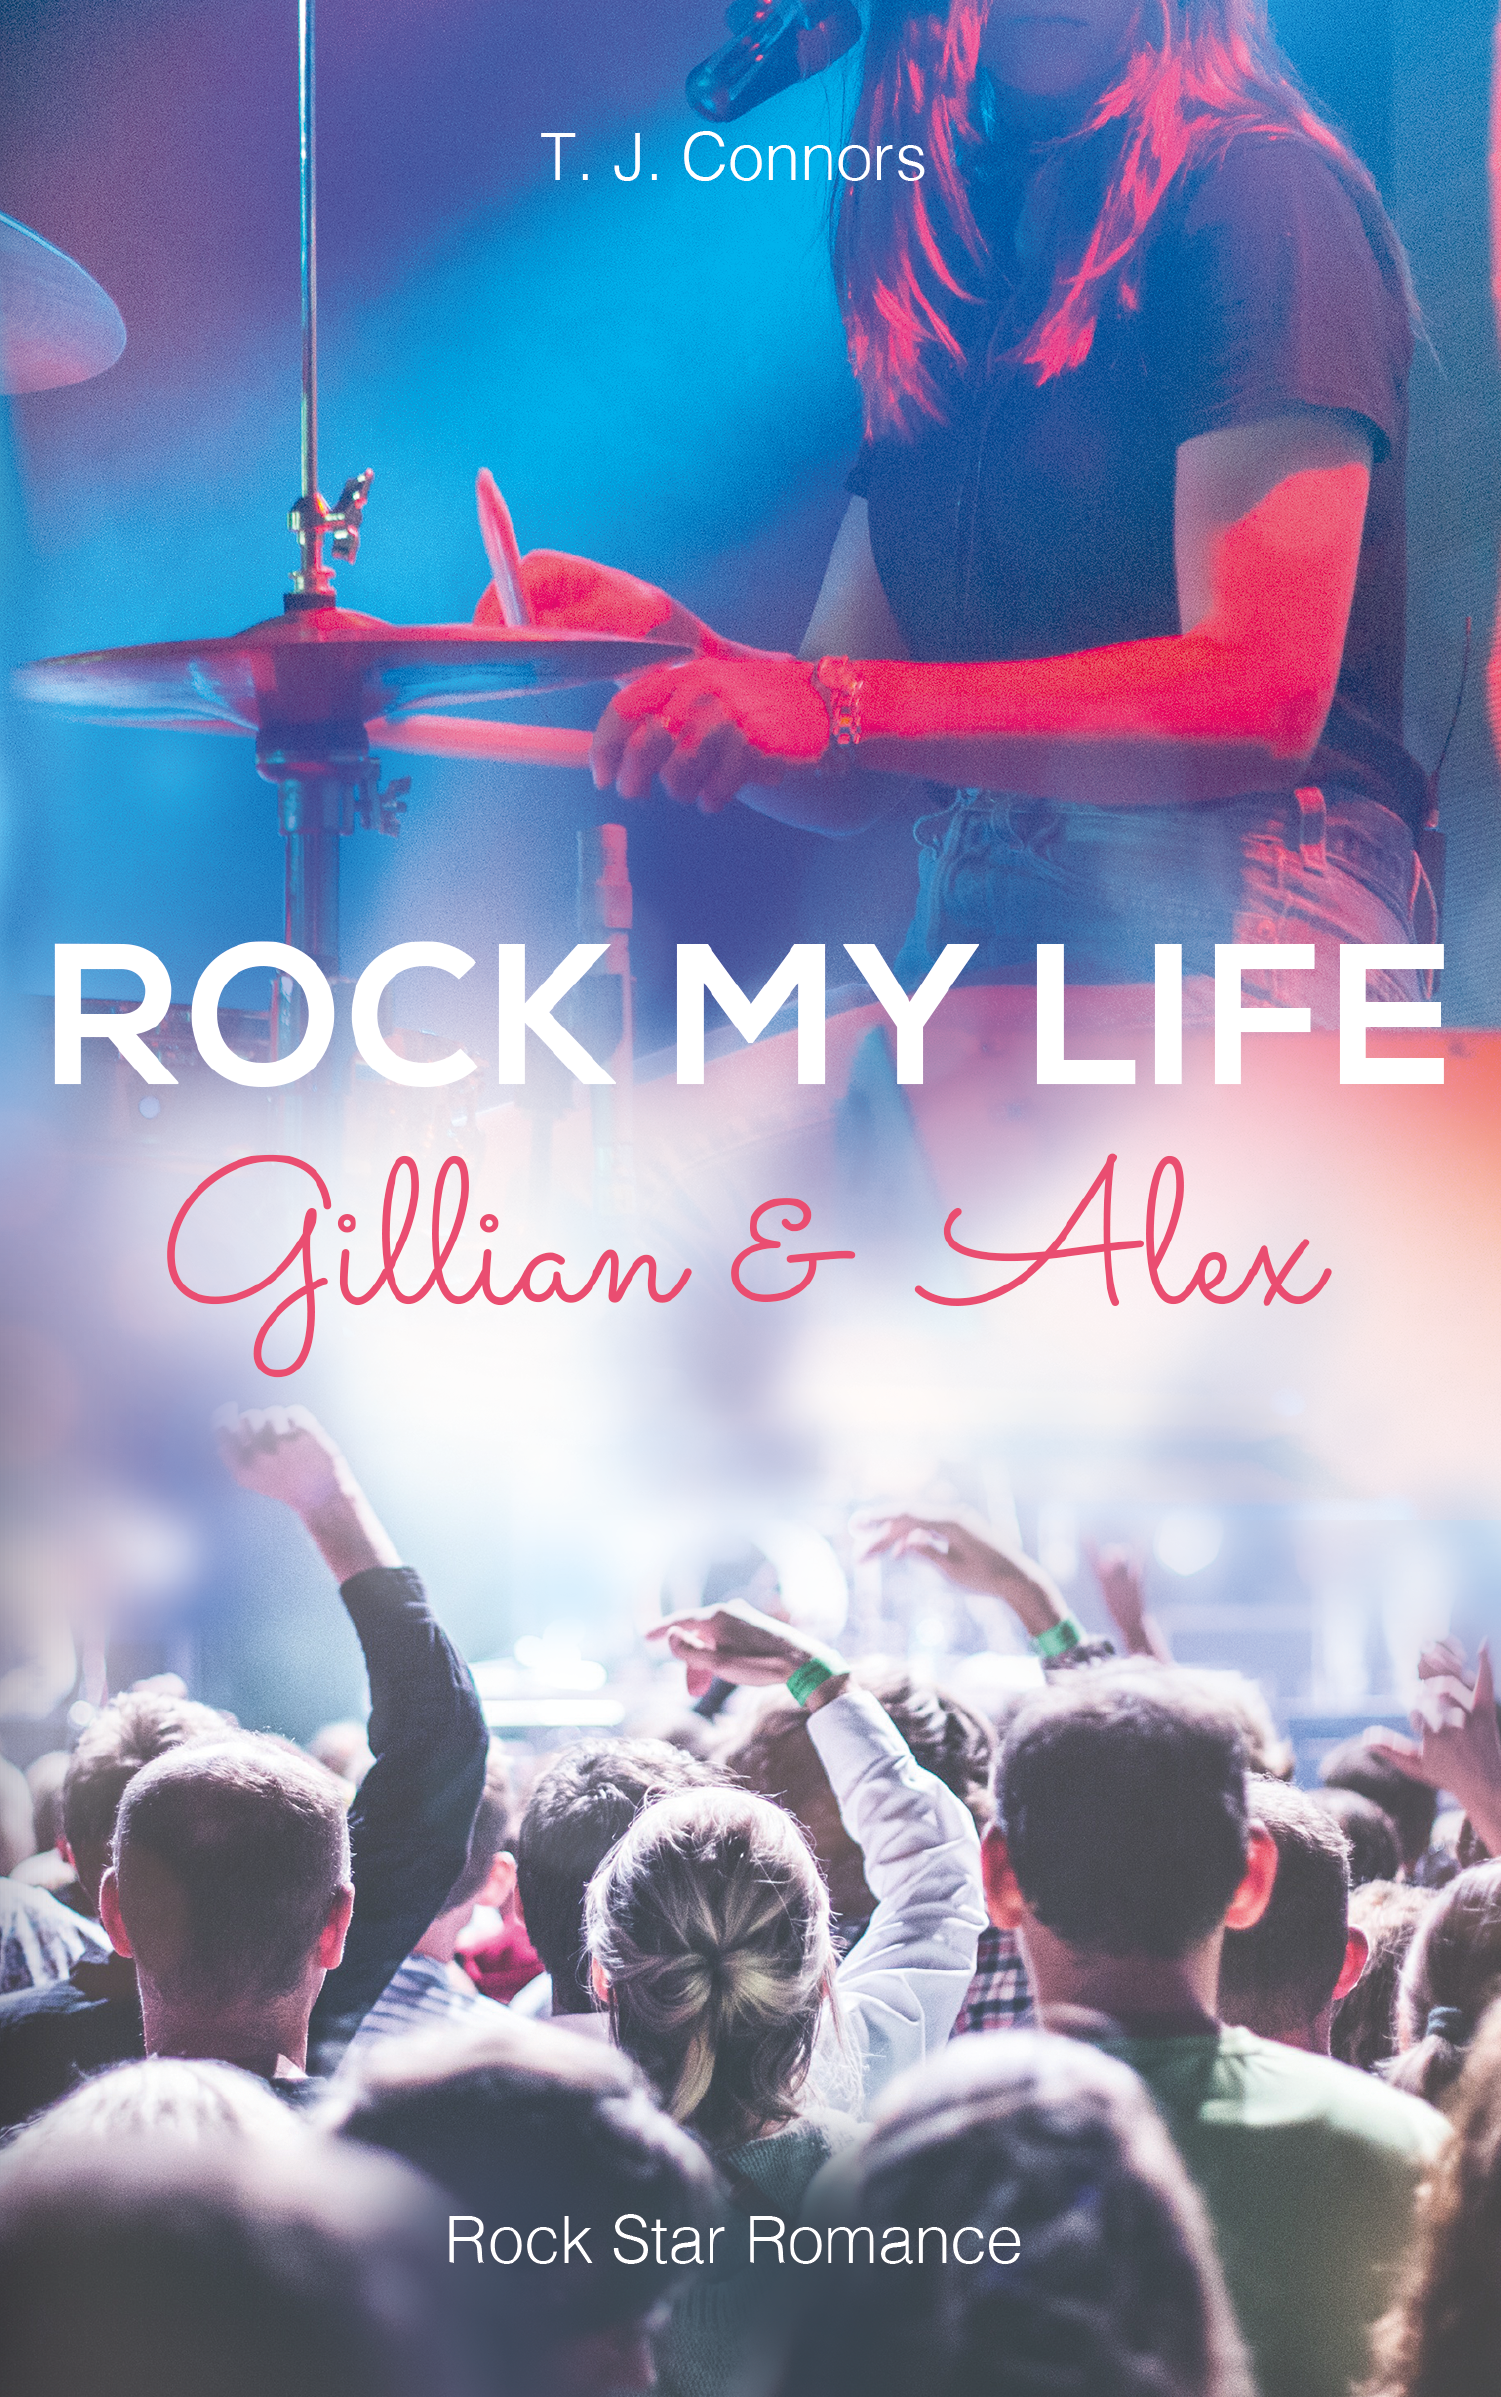 T. J. Connors – Rock My Life – Gillian & Alex